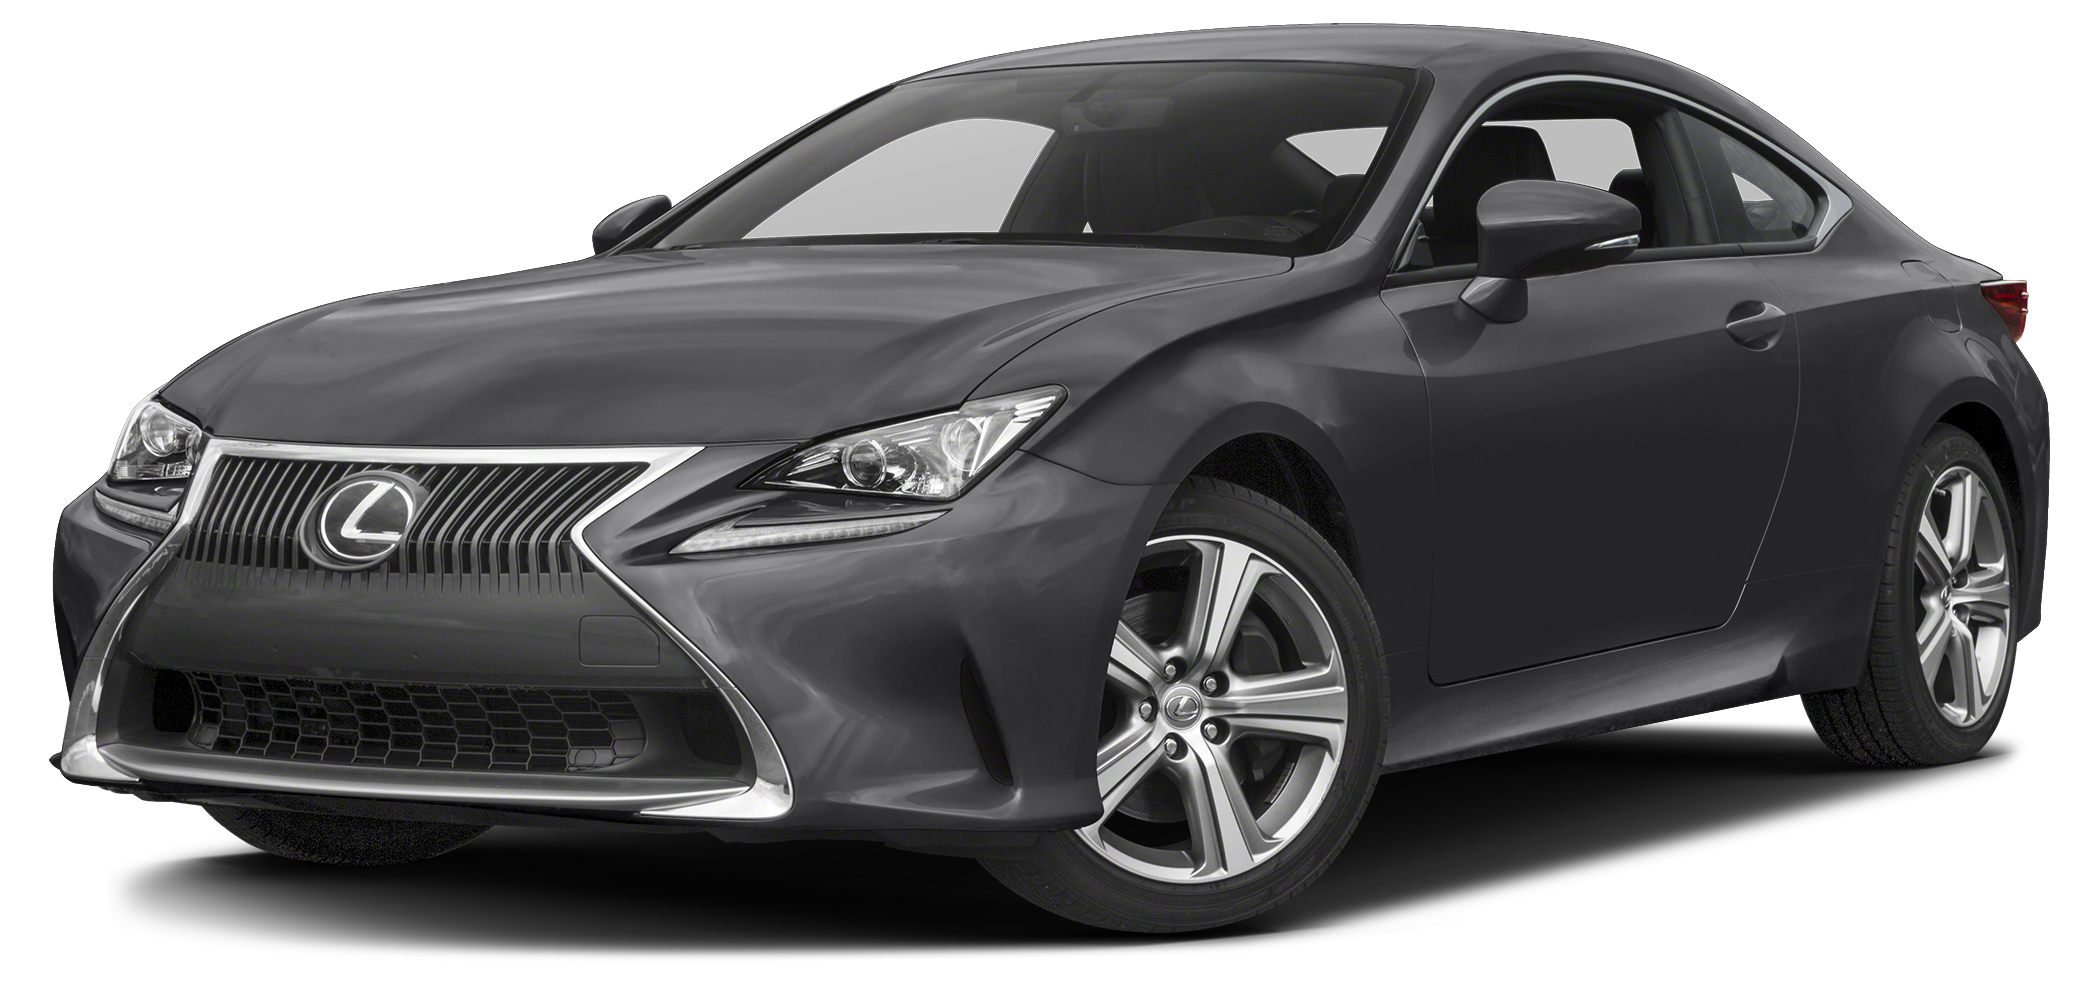 2017 Lexus Rc Coupe For Sale ▷ 109 Used Cars From $38 875